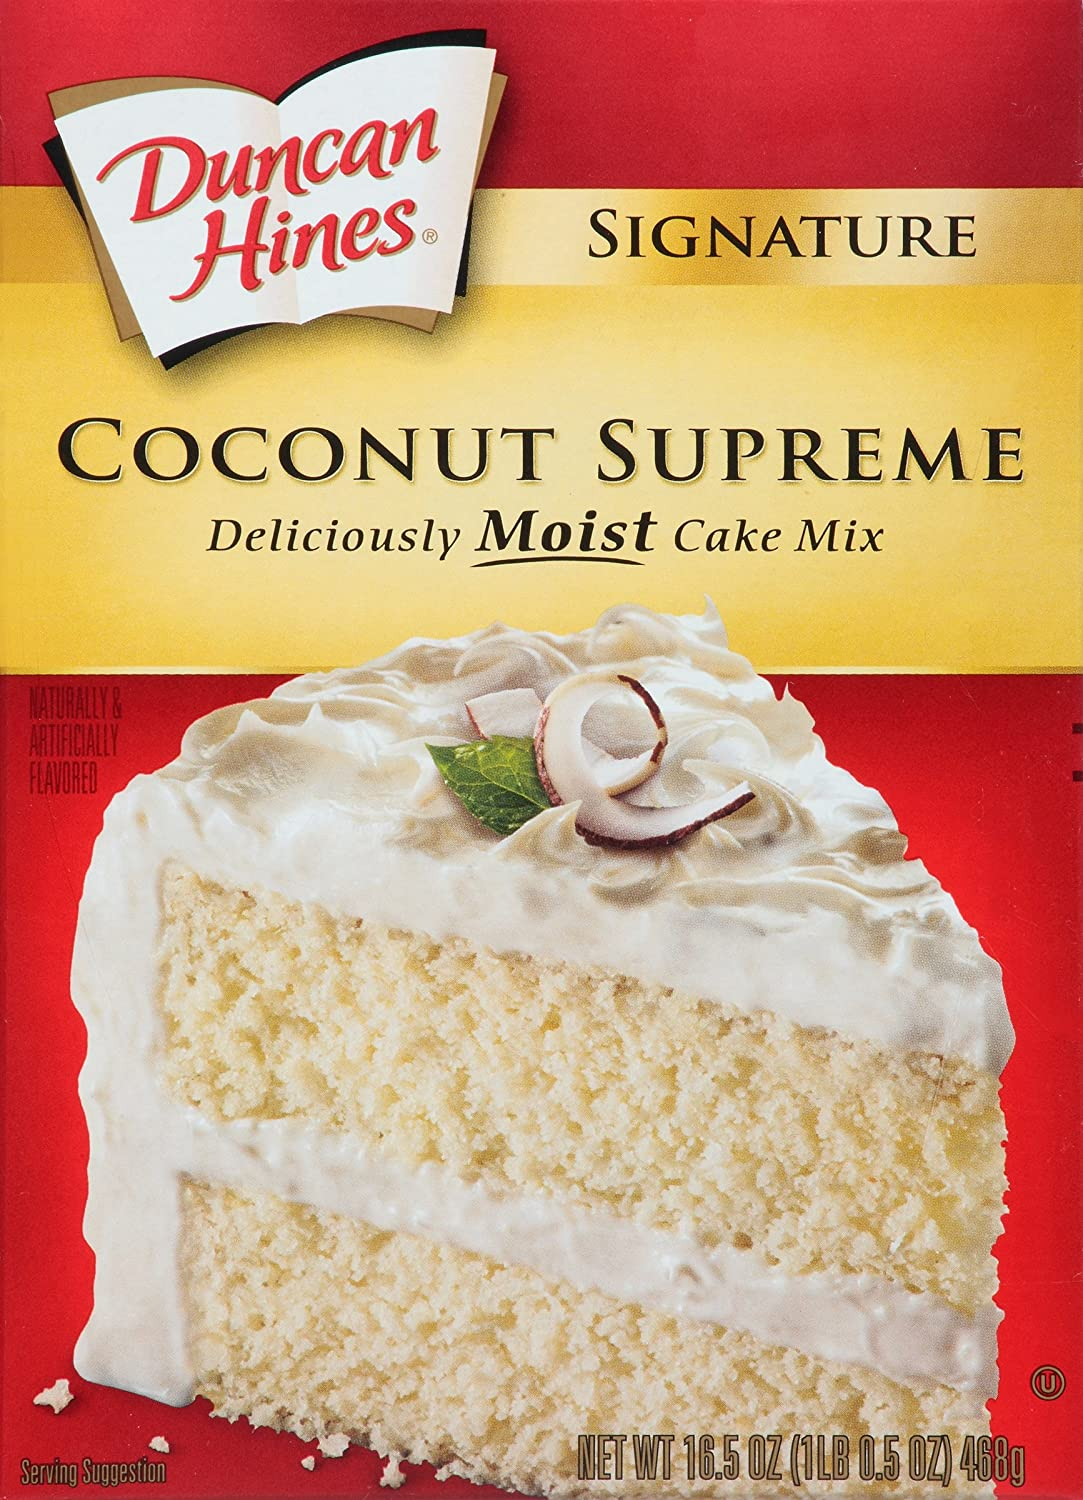 Duncan Hines Signature Cake Mix Coconut Supreme 16 5 Ounce Pack Of 12 Com Grocery Gourmet Food